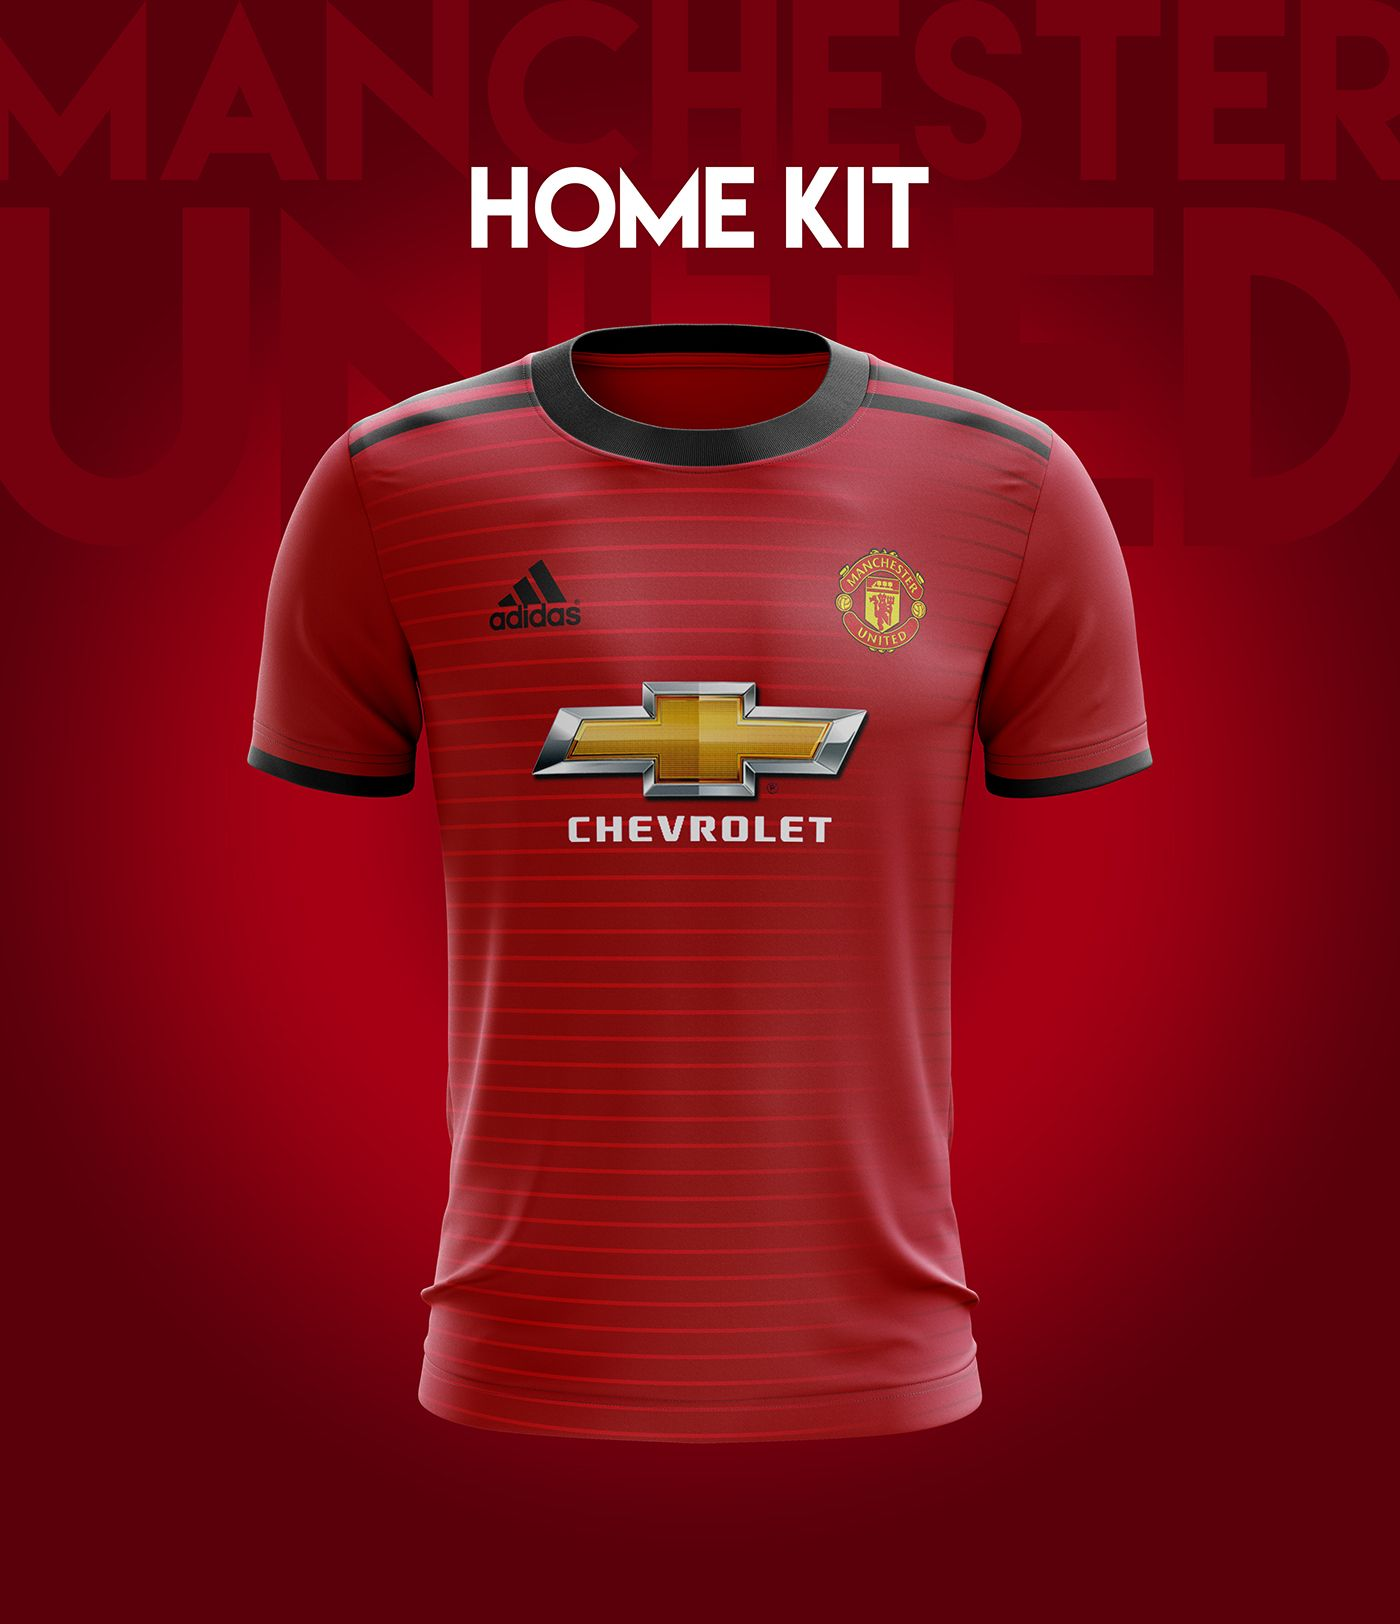 7812ad4ef I designed football kits for Manchester United for the upcoming season  18 19. And this is the result of how it would look like if i could design a  kit for ...